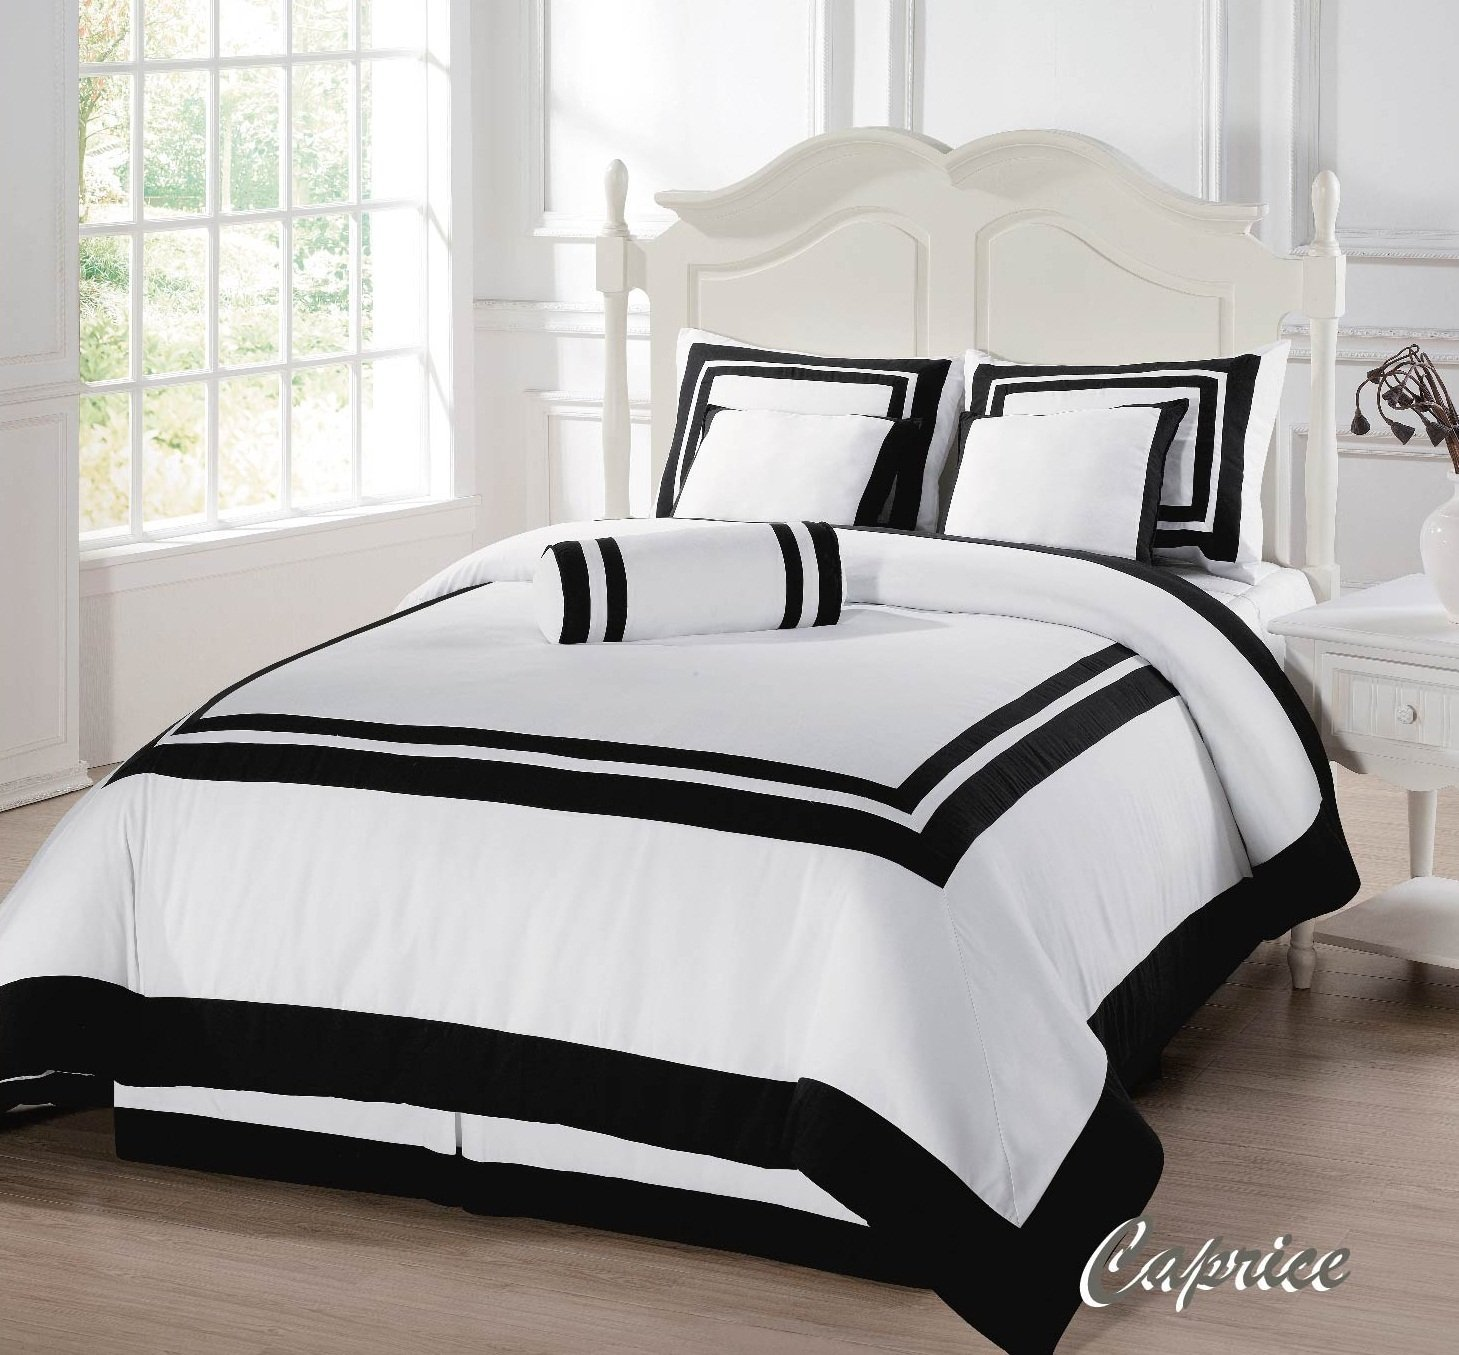 Queen Size Bedding Sets | Jcpenney Comforter Sets | Grey Comforters